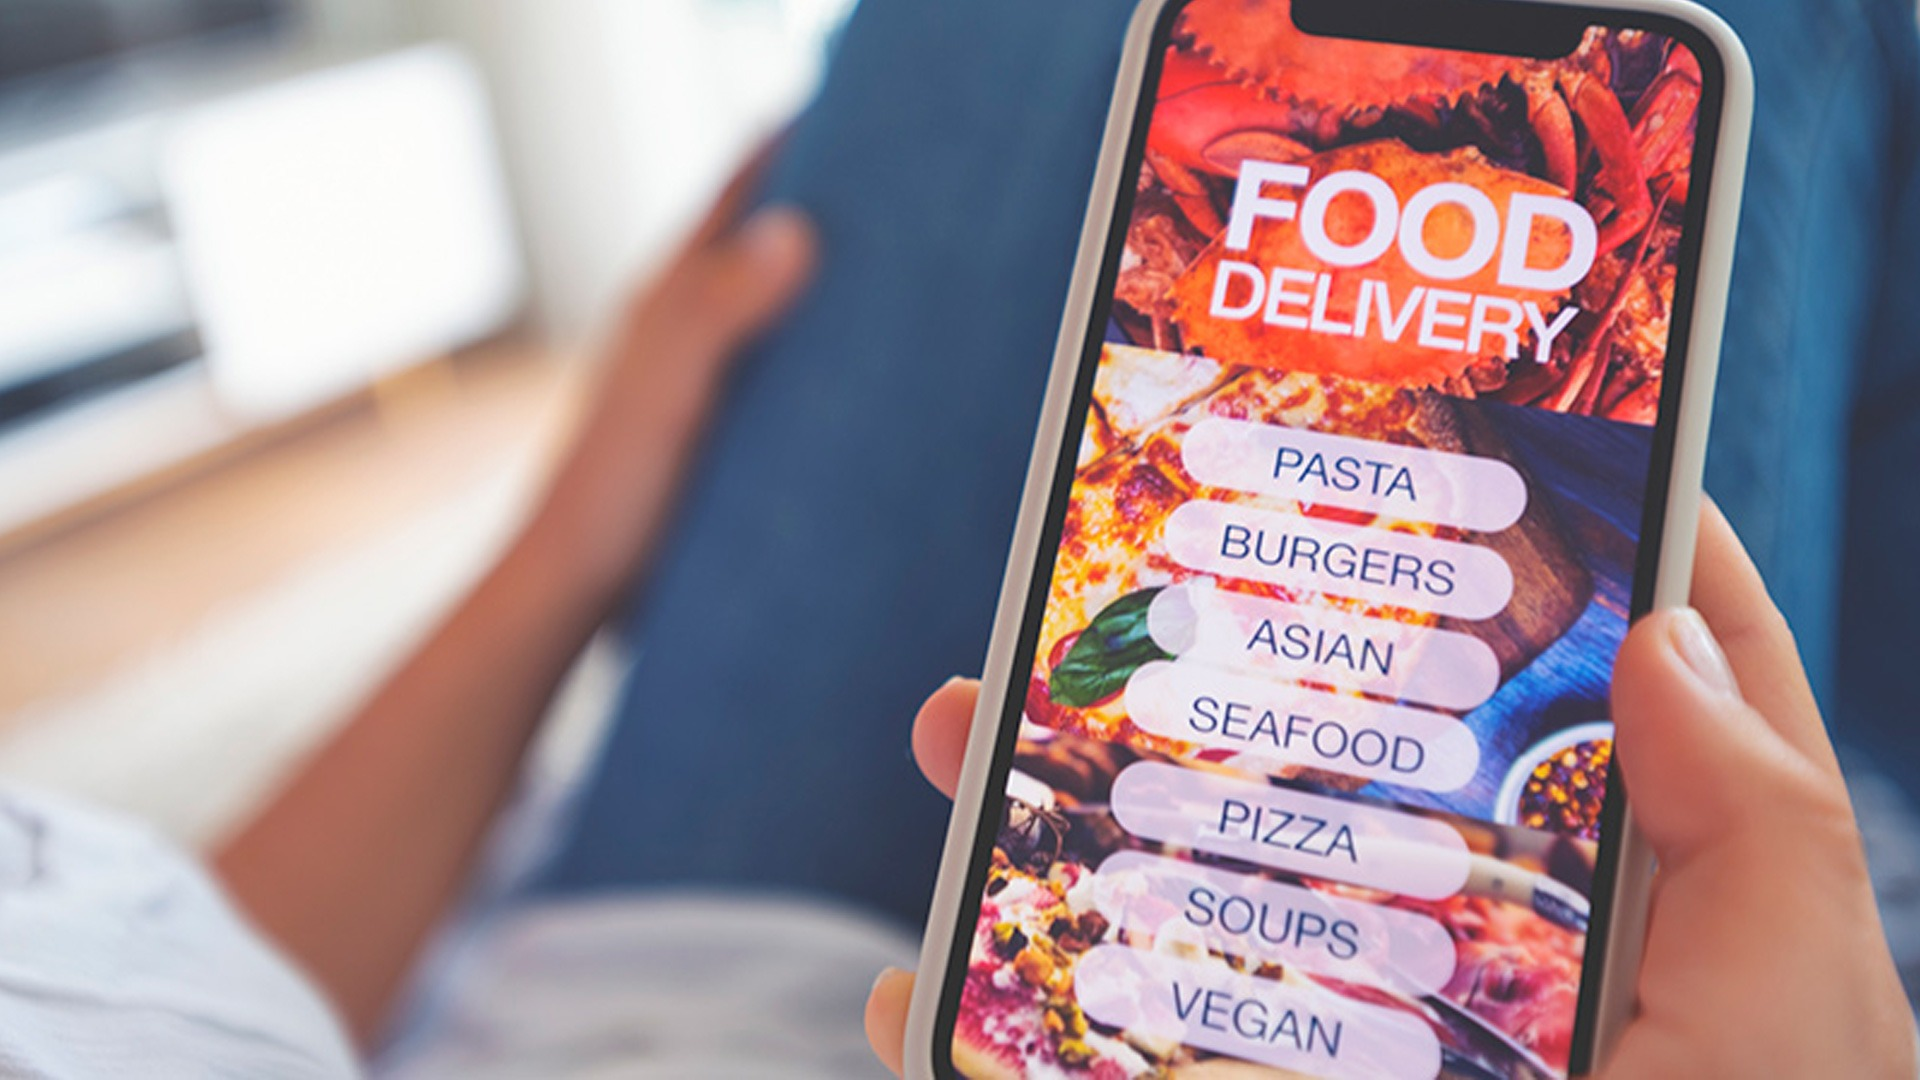 Wownowkl: How Delivery Apps Are Killing Local Restaurants